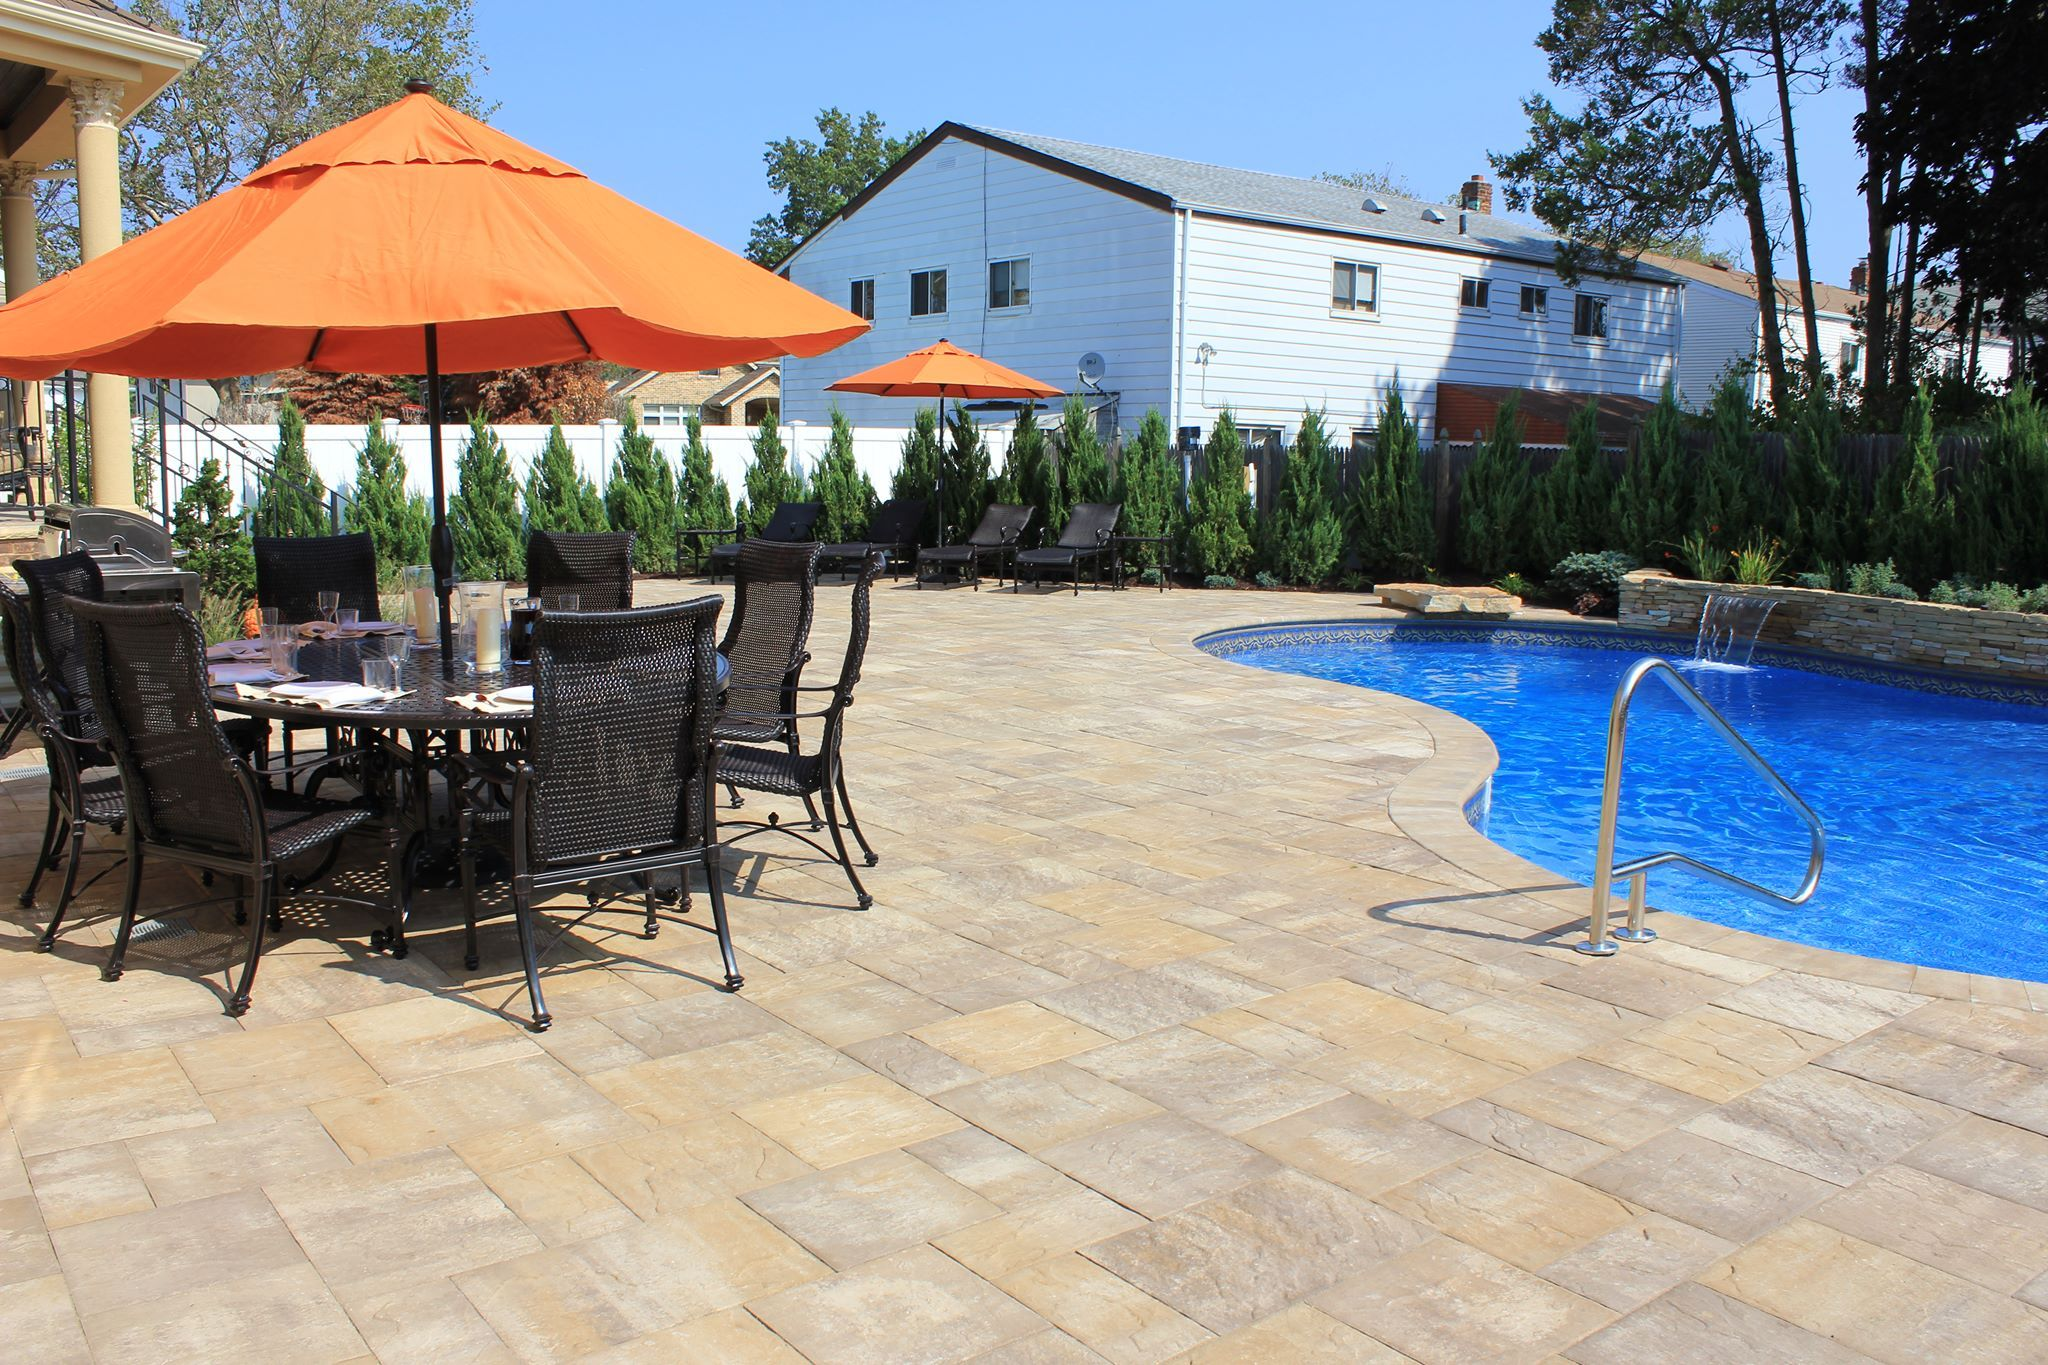 Cambridge pavingstones wall systems color options - Cambridge Pavingstone Patio In Sherwood Ledgestone Xl Style Sahara Chestnut Light Color And Free Form